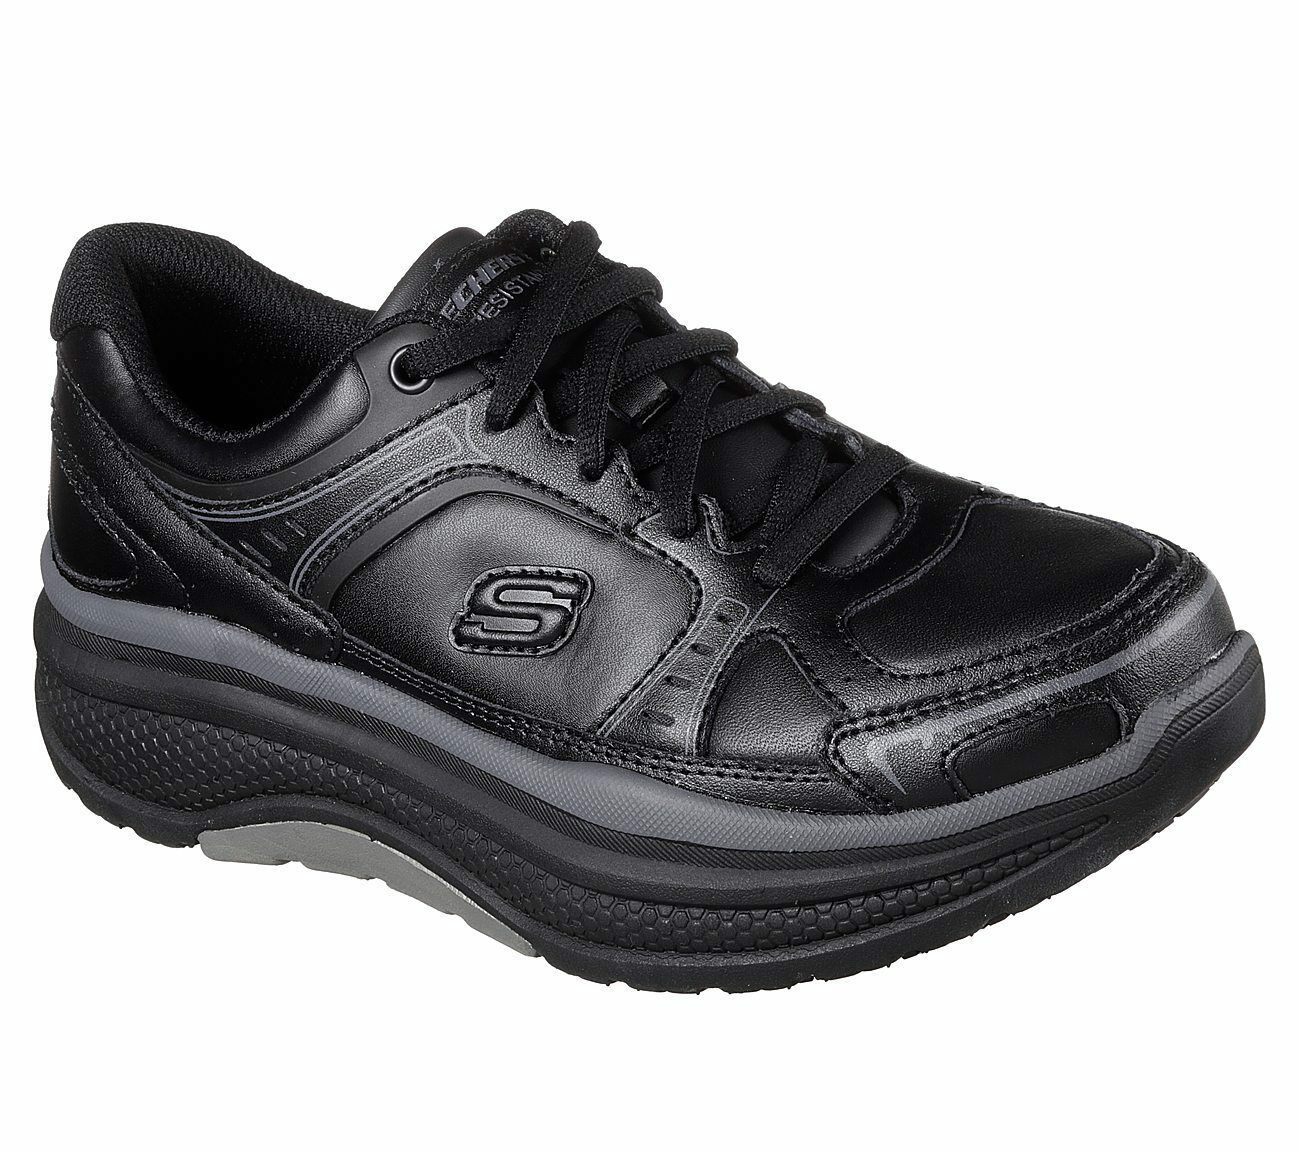 Skechers Work Black shoes Women Memory Foam Slip Resistant Rocker Comfort 77218 image 1